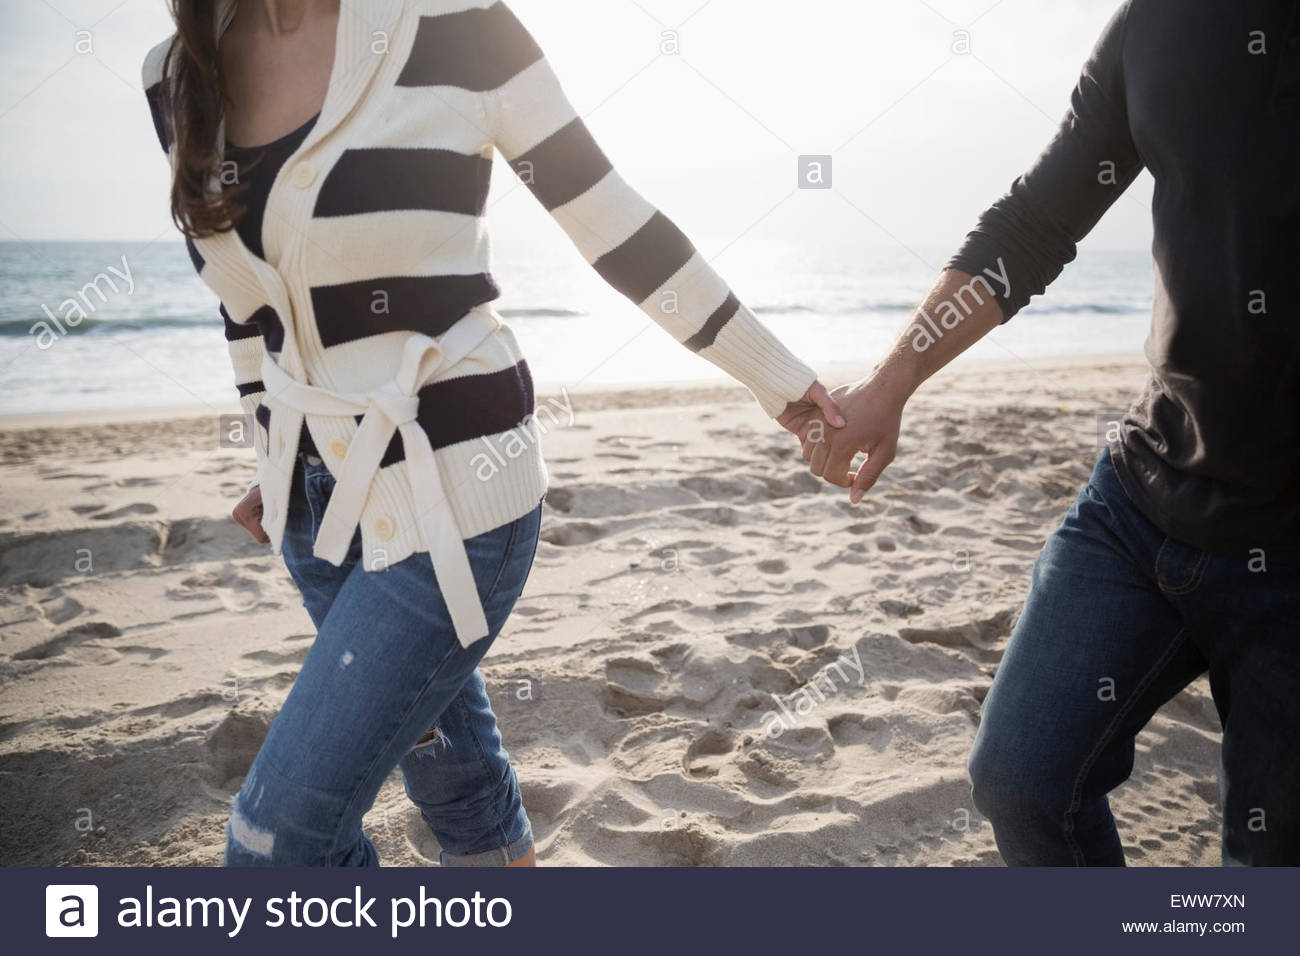 Couple holding hands and walking on beach Photo Stock